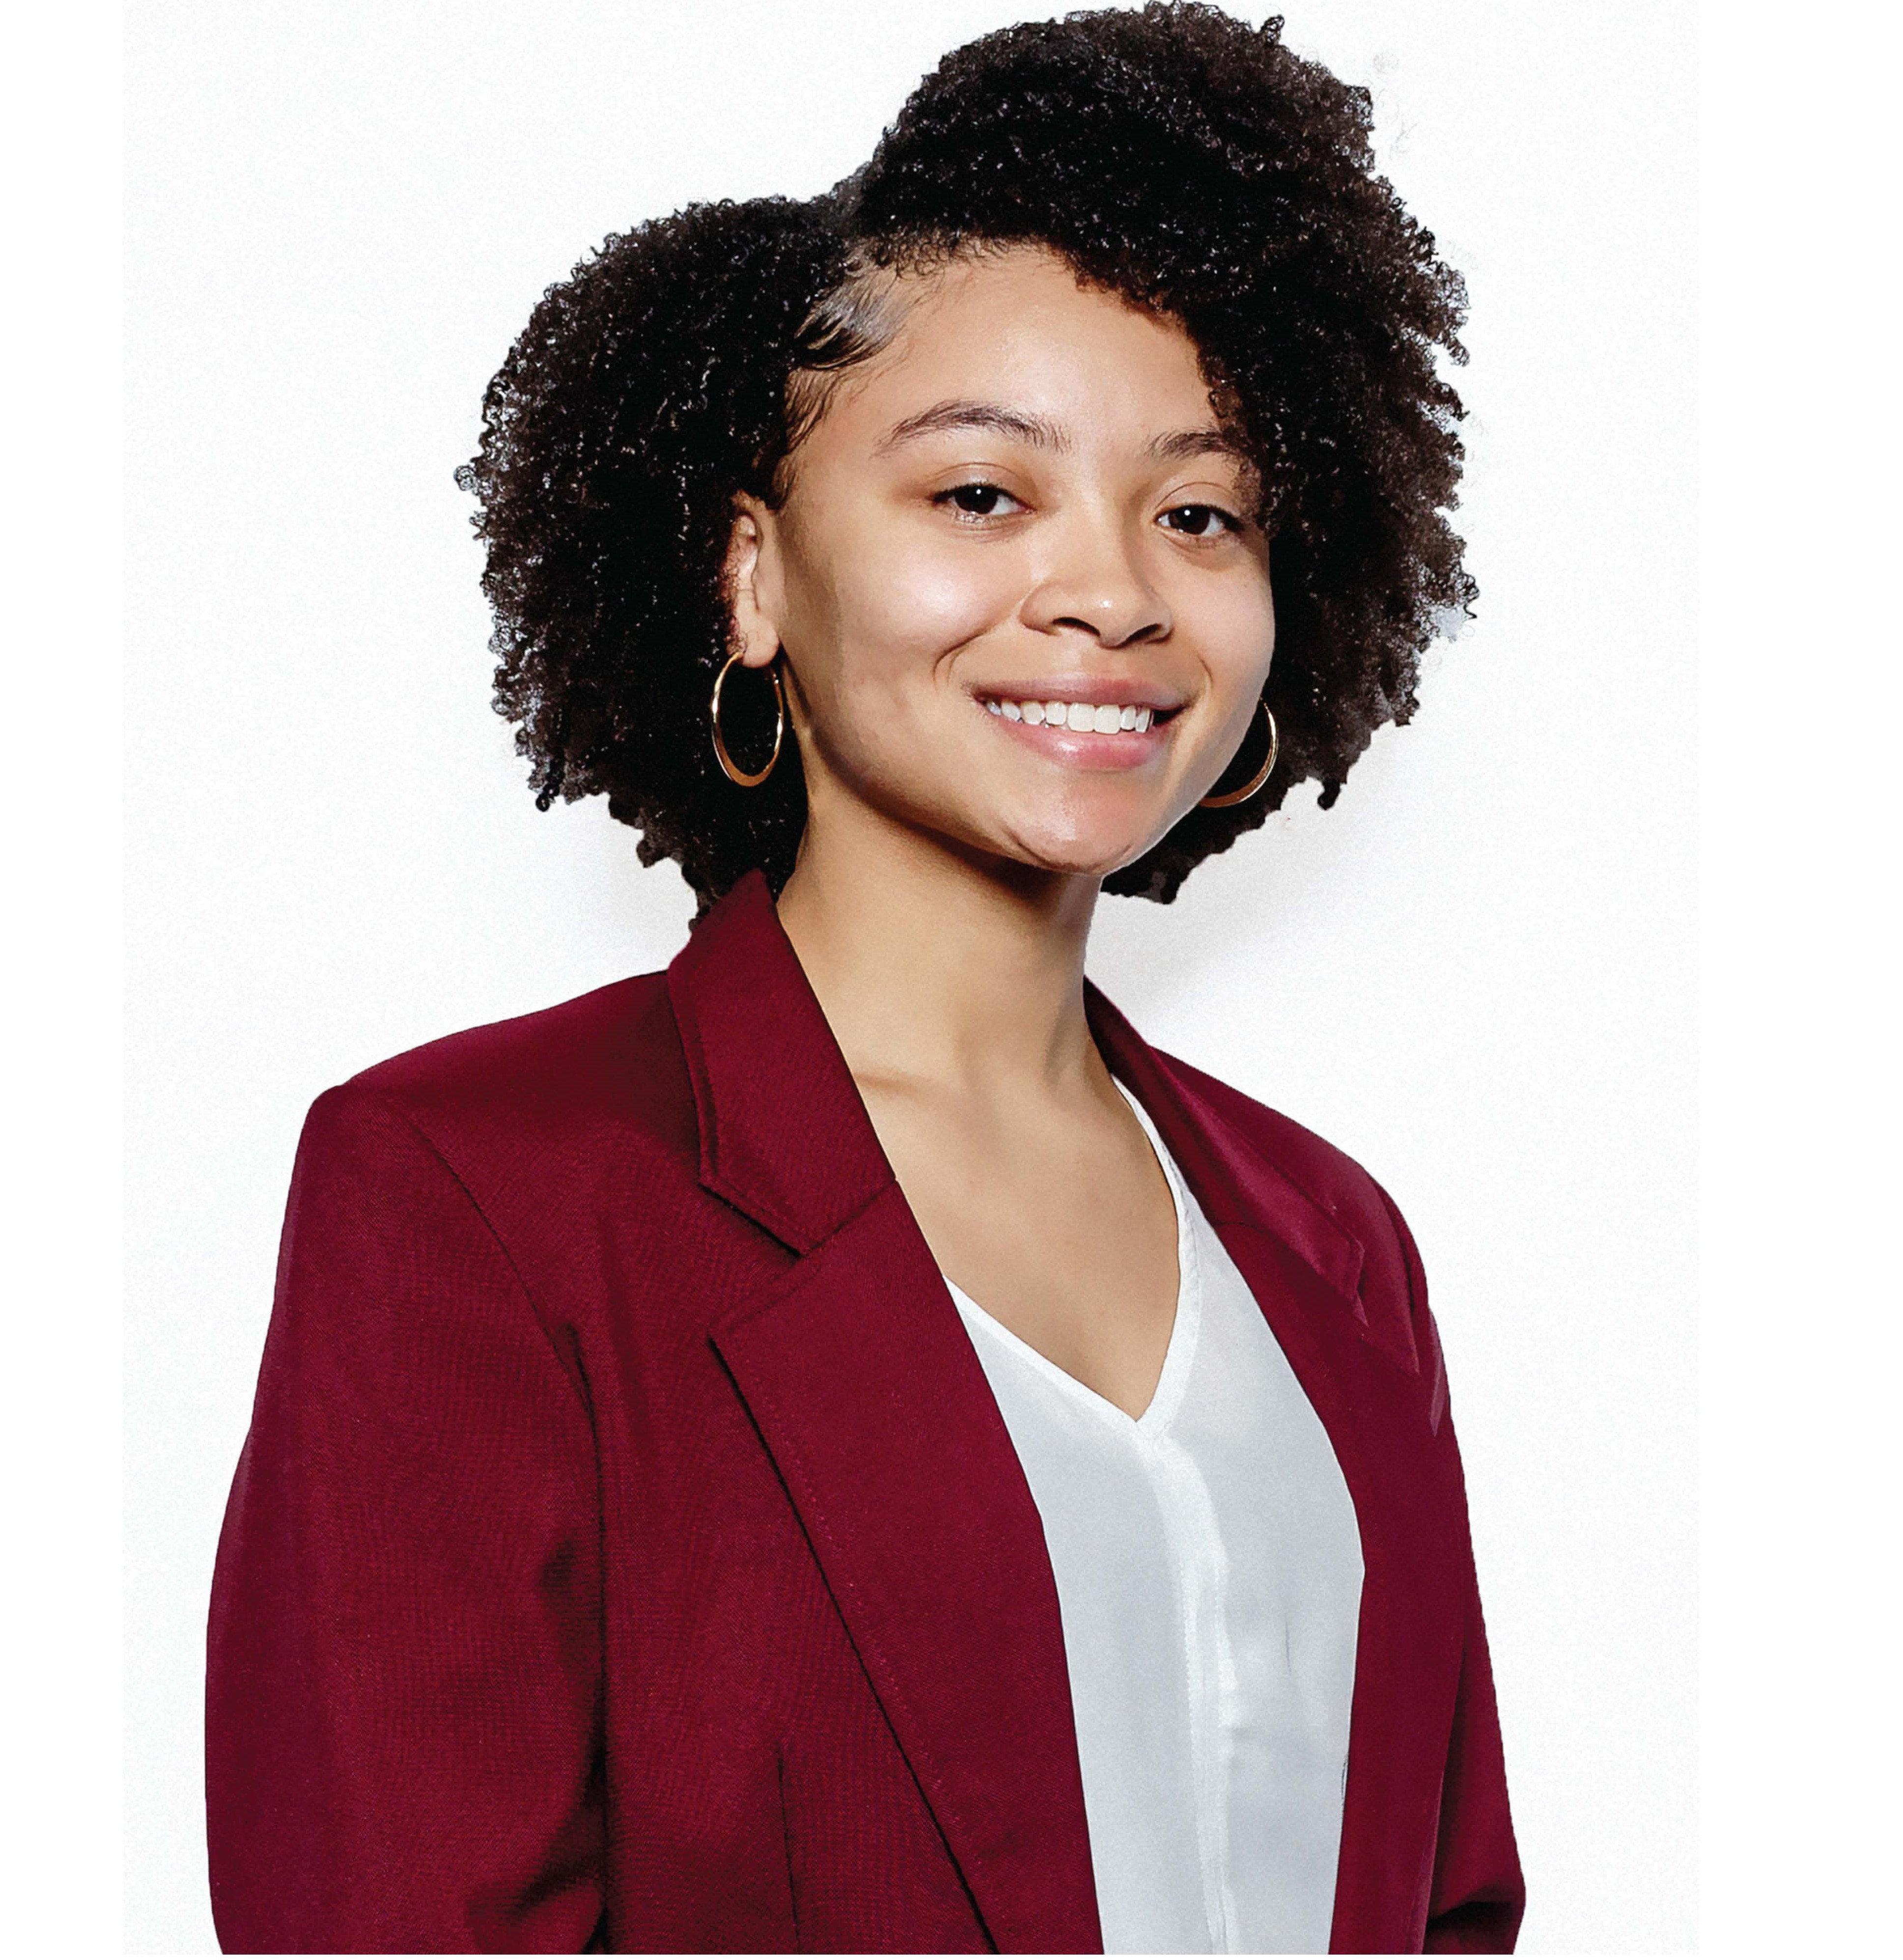 Alabama A&M University Scholarship Recipient